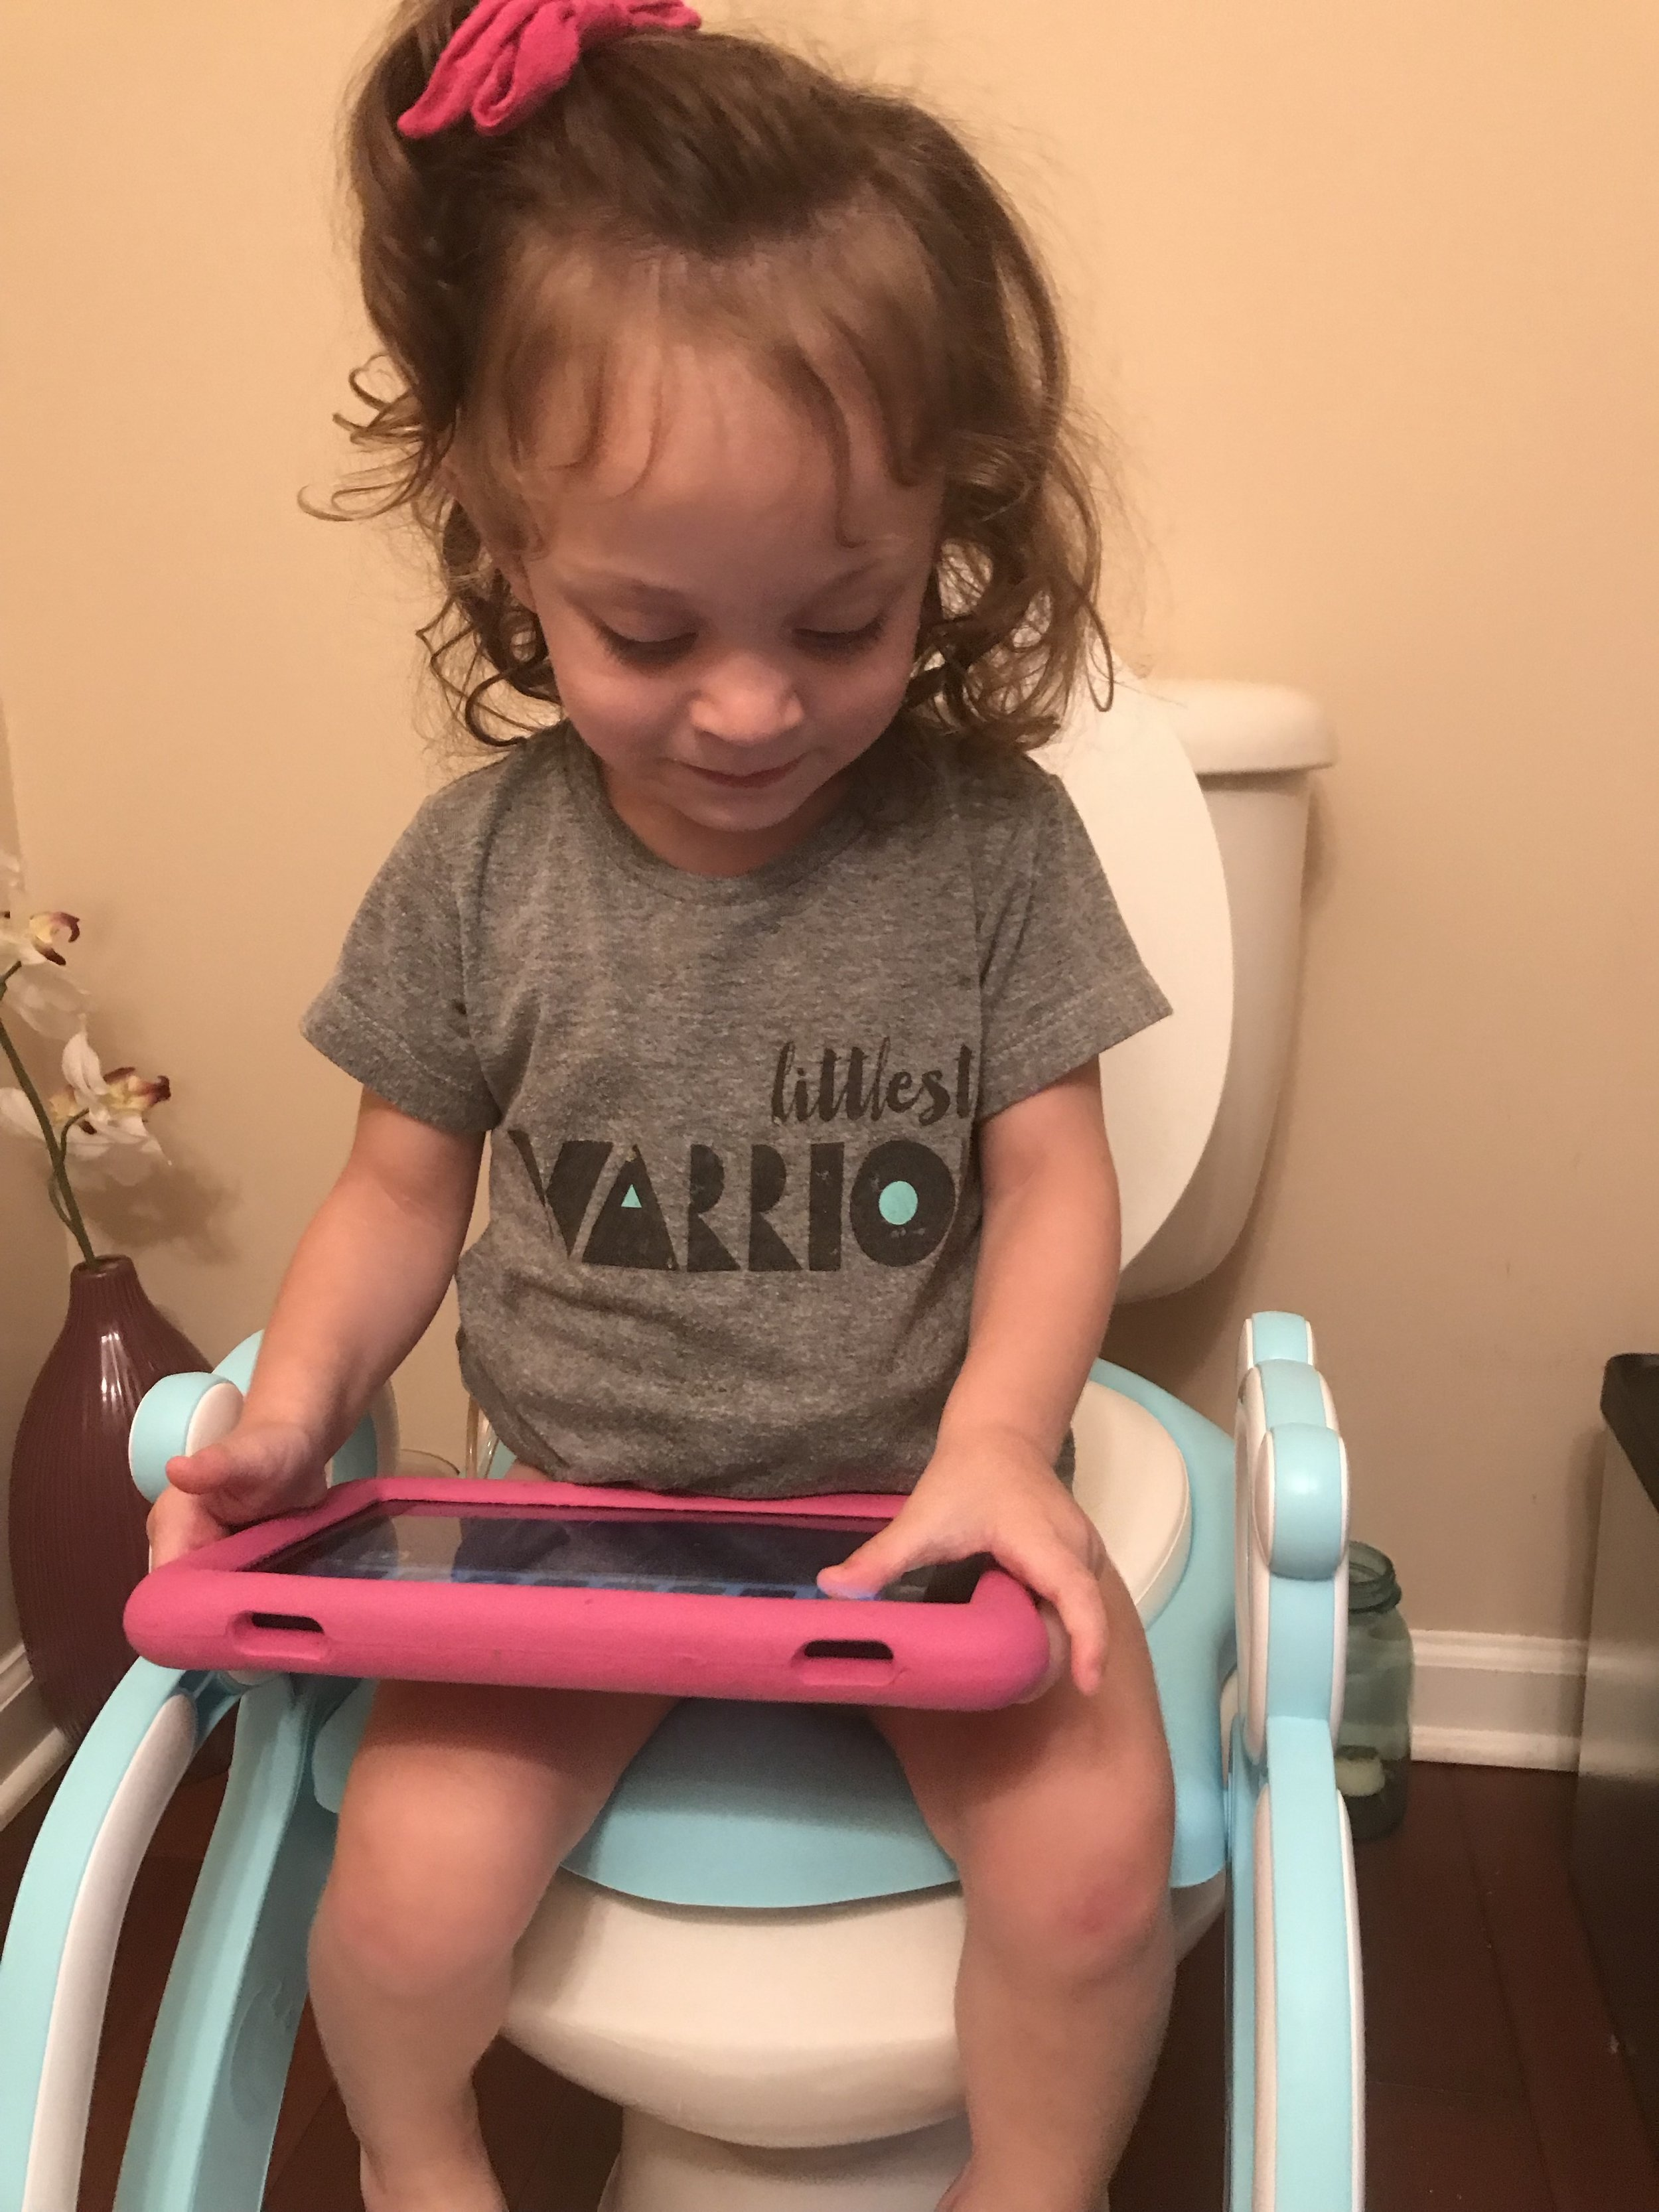 how to potty train in 3 days - www.shegotguts.com